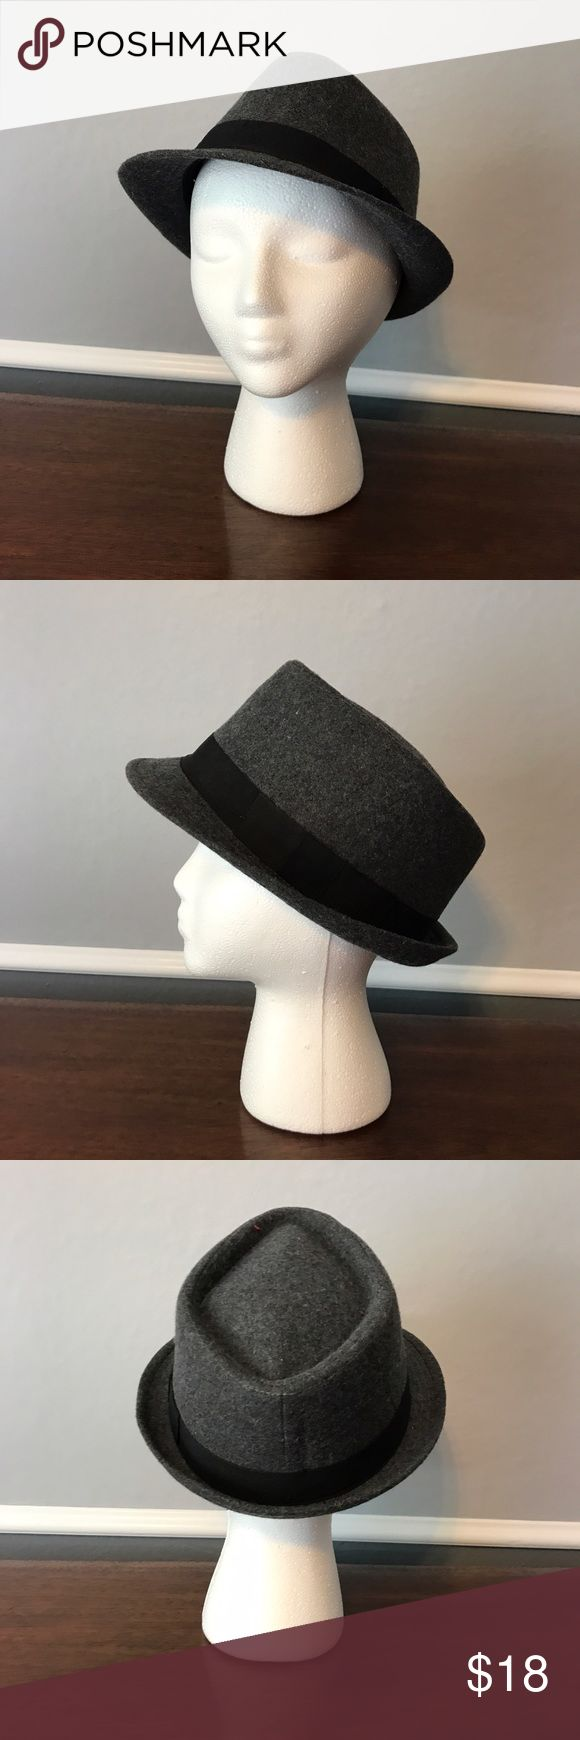 Gray and black fedora In perfect condition gray and black fedora. Size medium/large. No brand label Accessories Hats